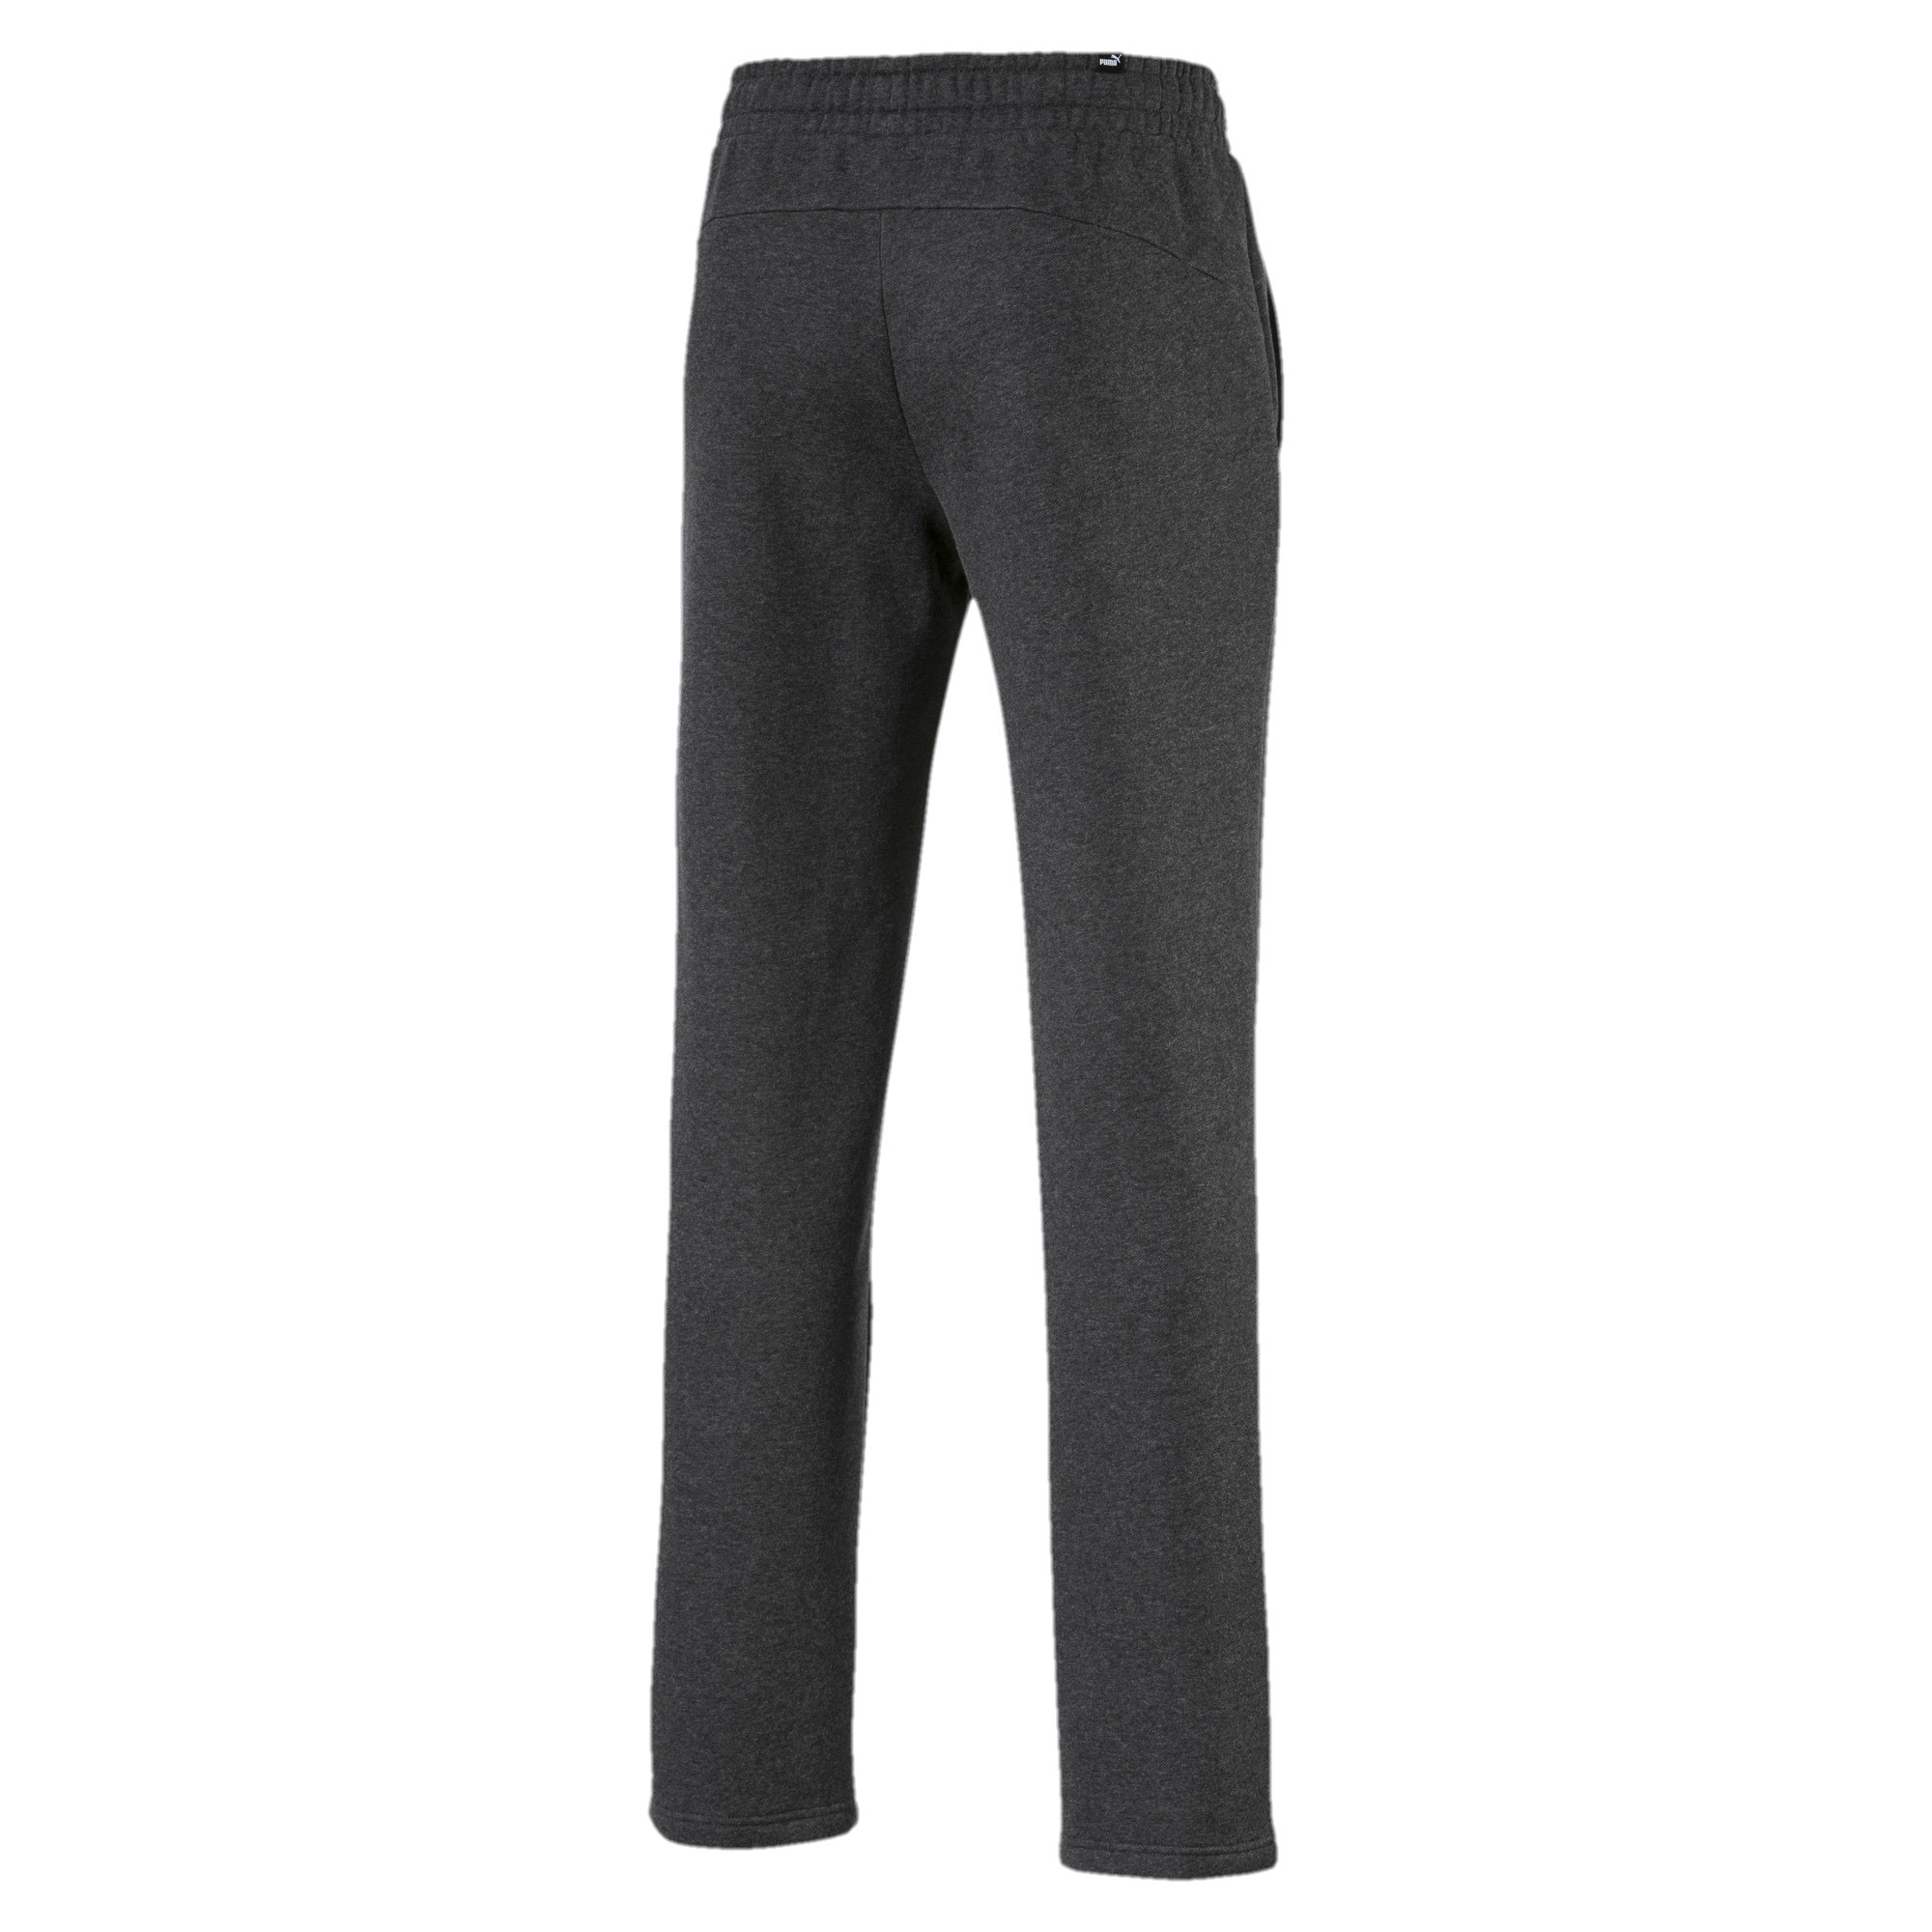 PUMA-Essentials-Men-039-s-Fleece-Pants-Men-Knitted-Pants-Basics thumbnail 18